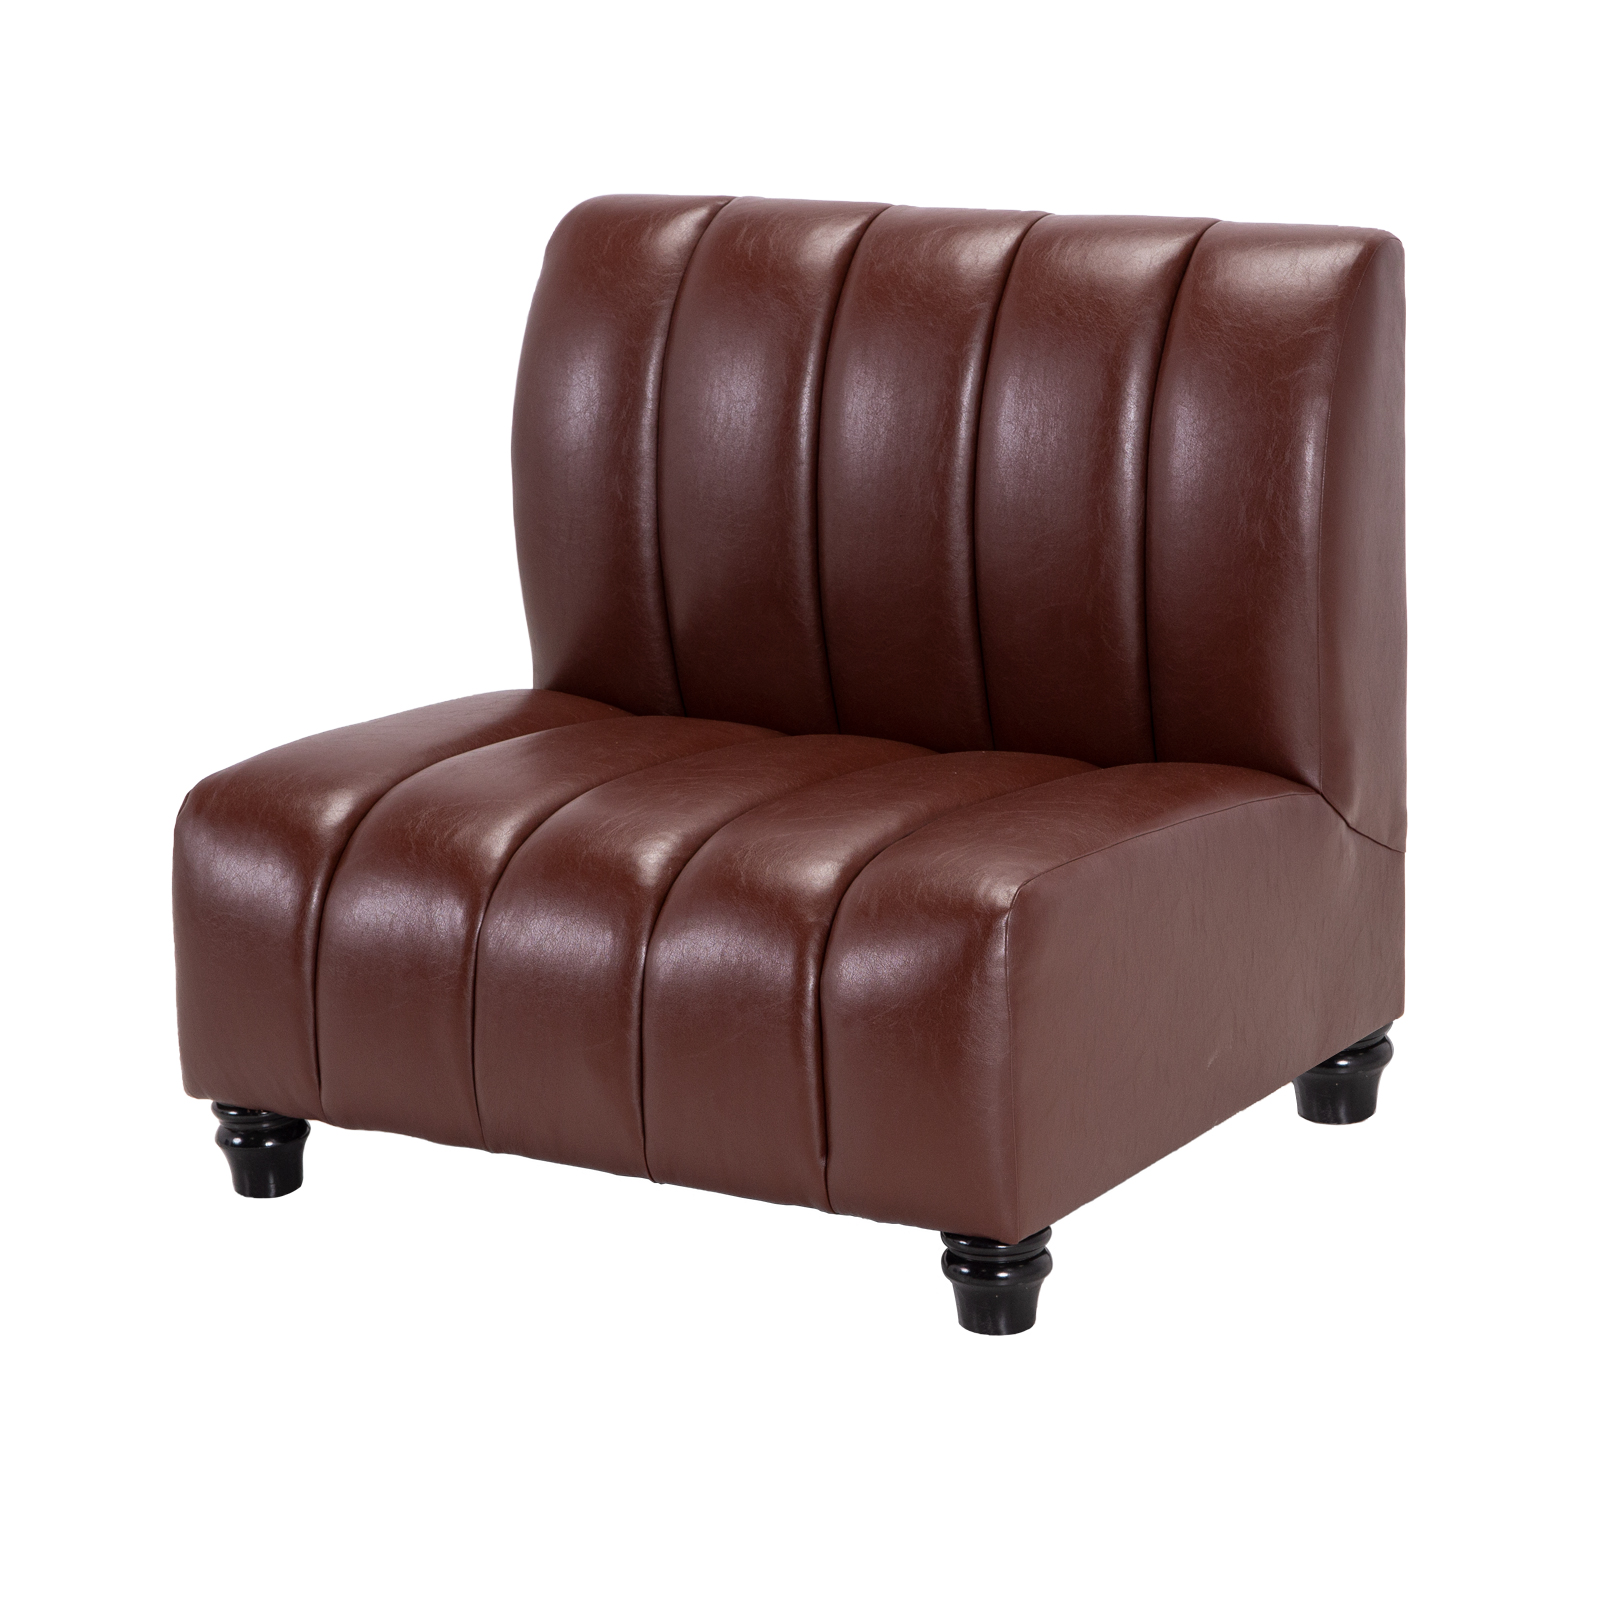 Salon Armless Chair Oxblood Event Trade Show Furniture